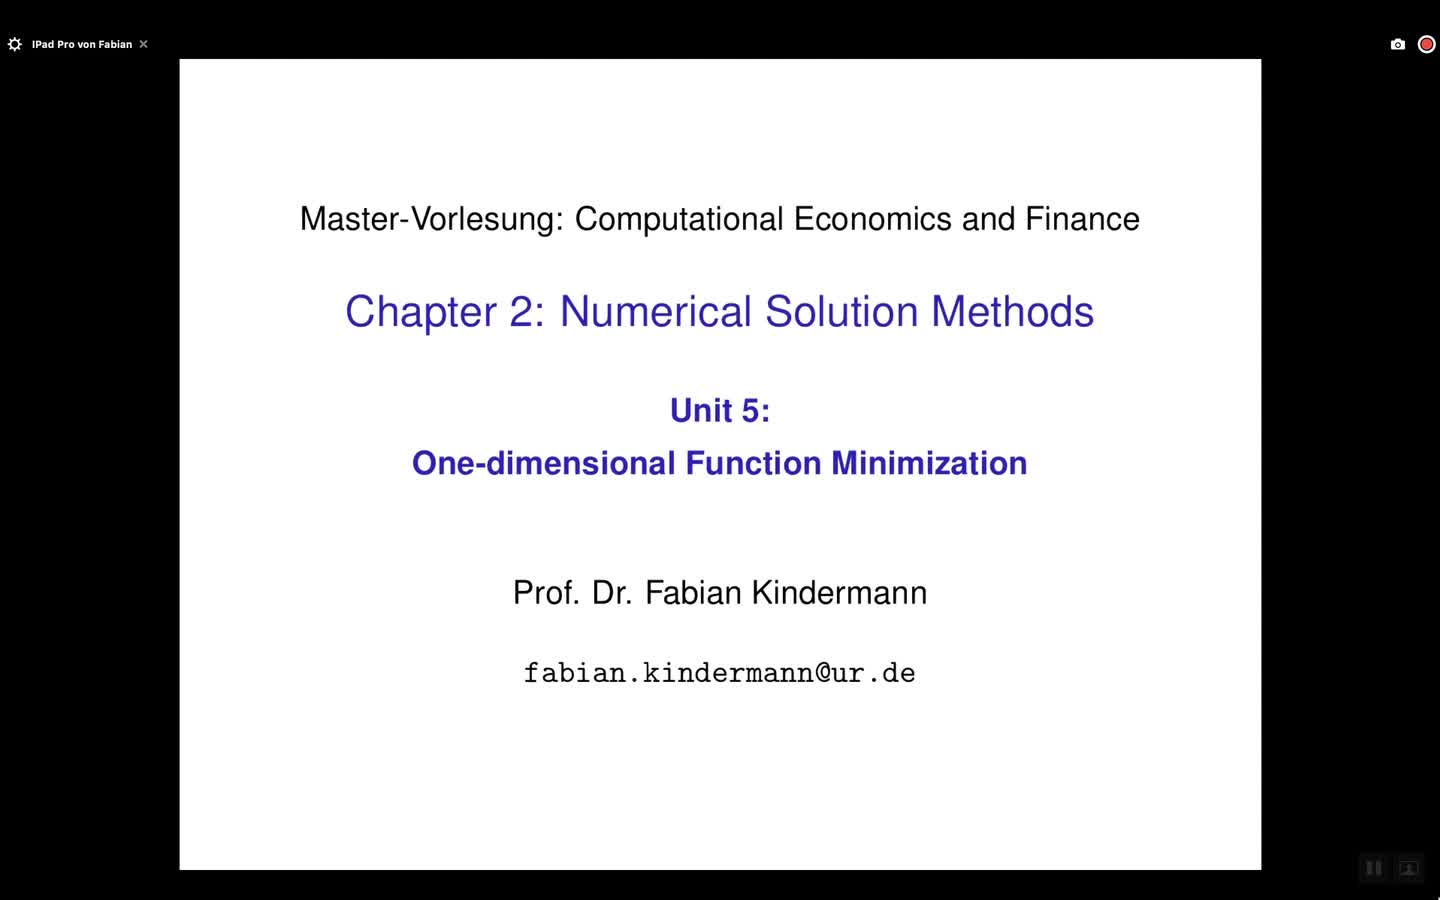 Chapter 2 - Unit 5 - One-dimensional Function Minimization